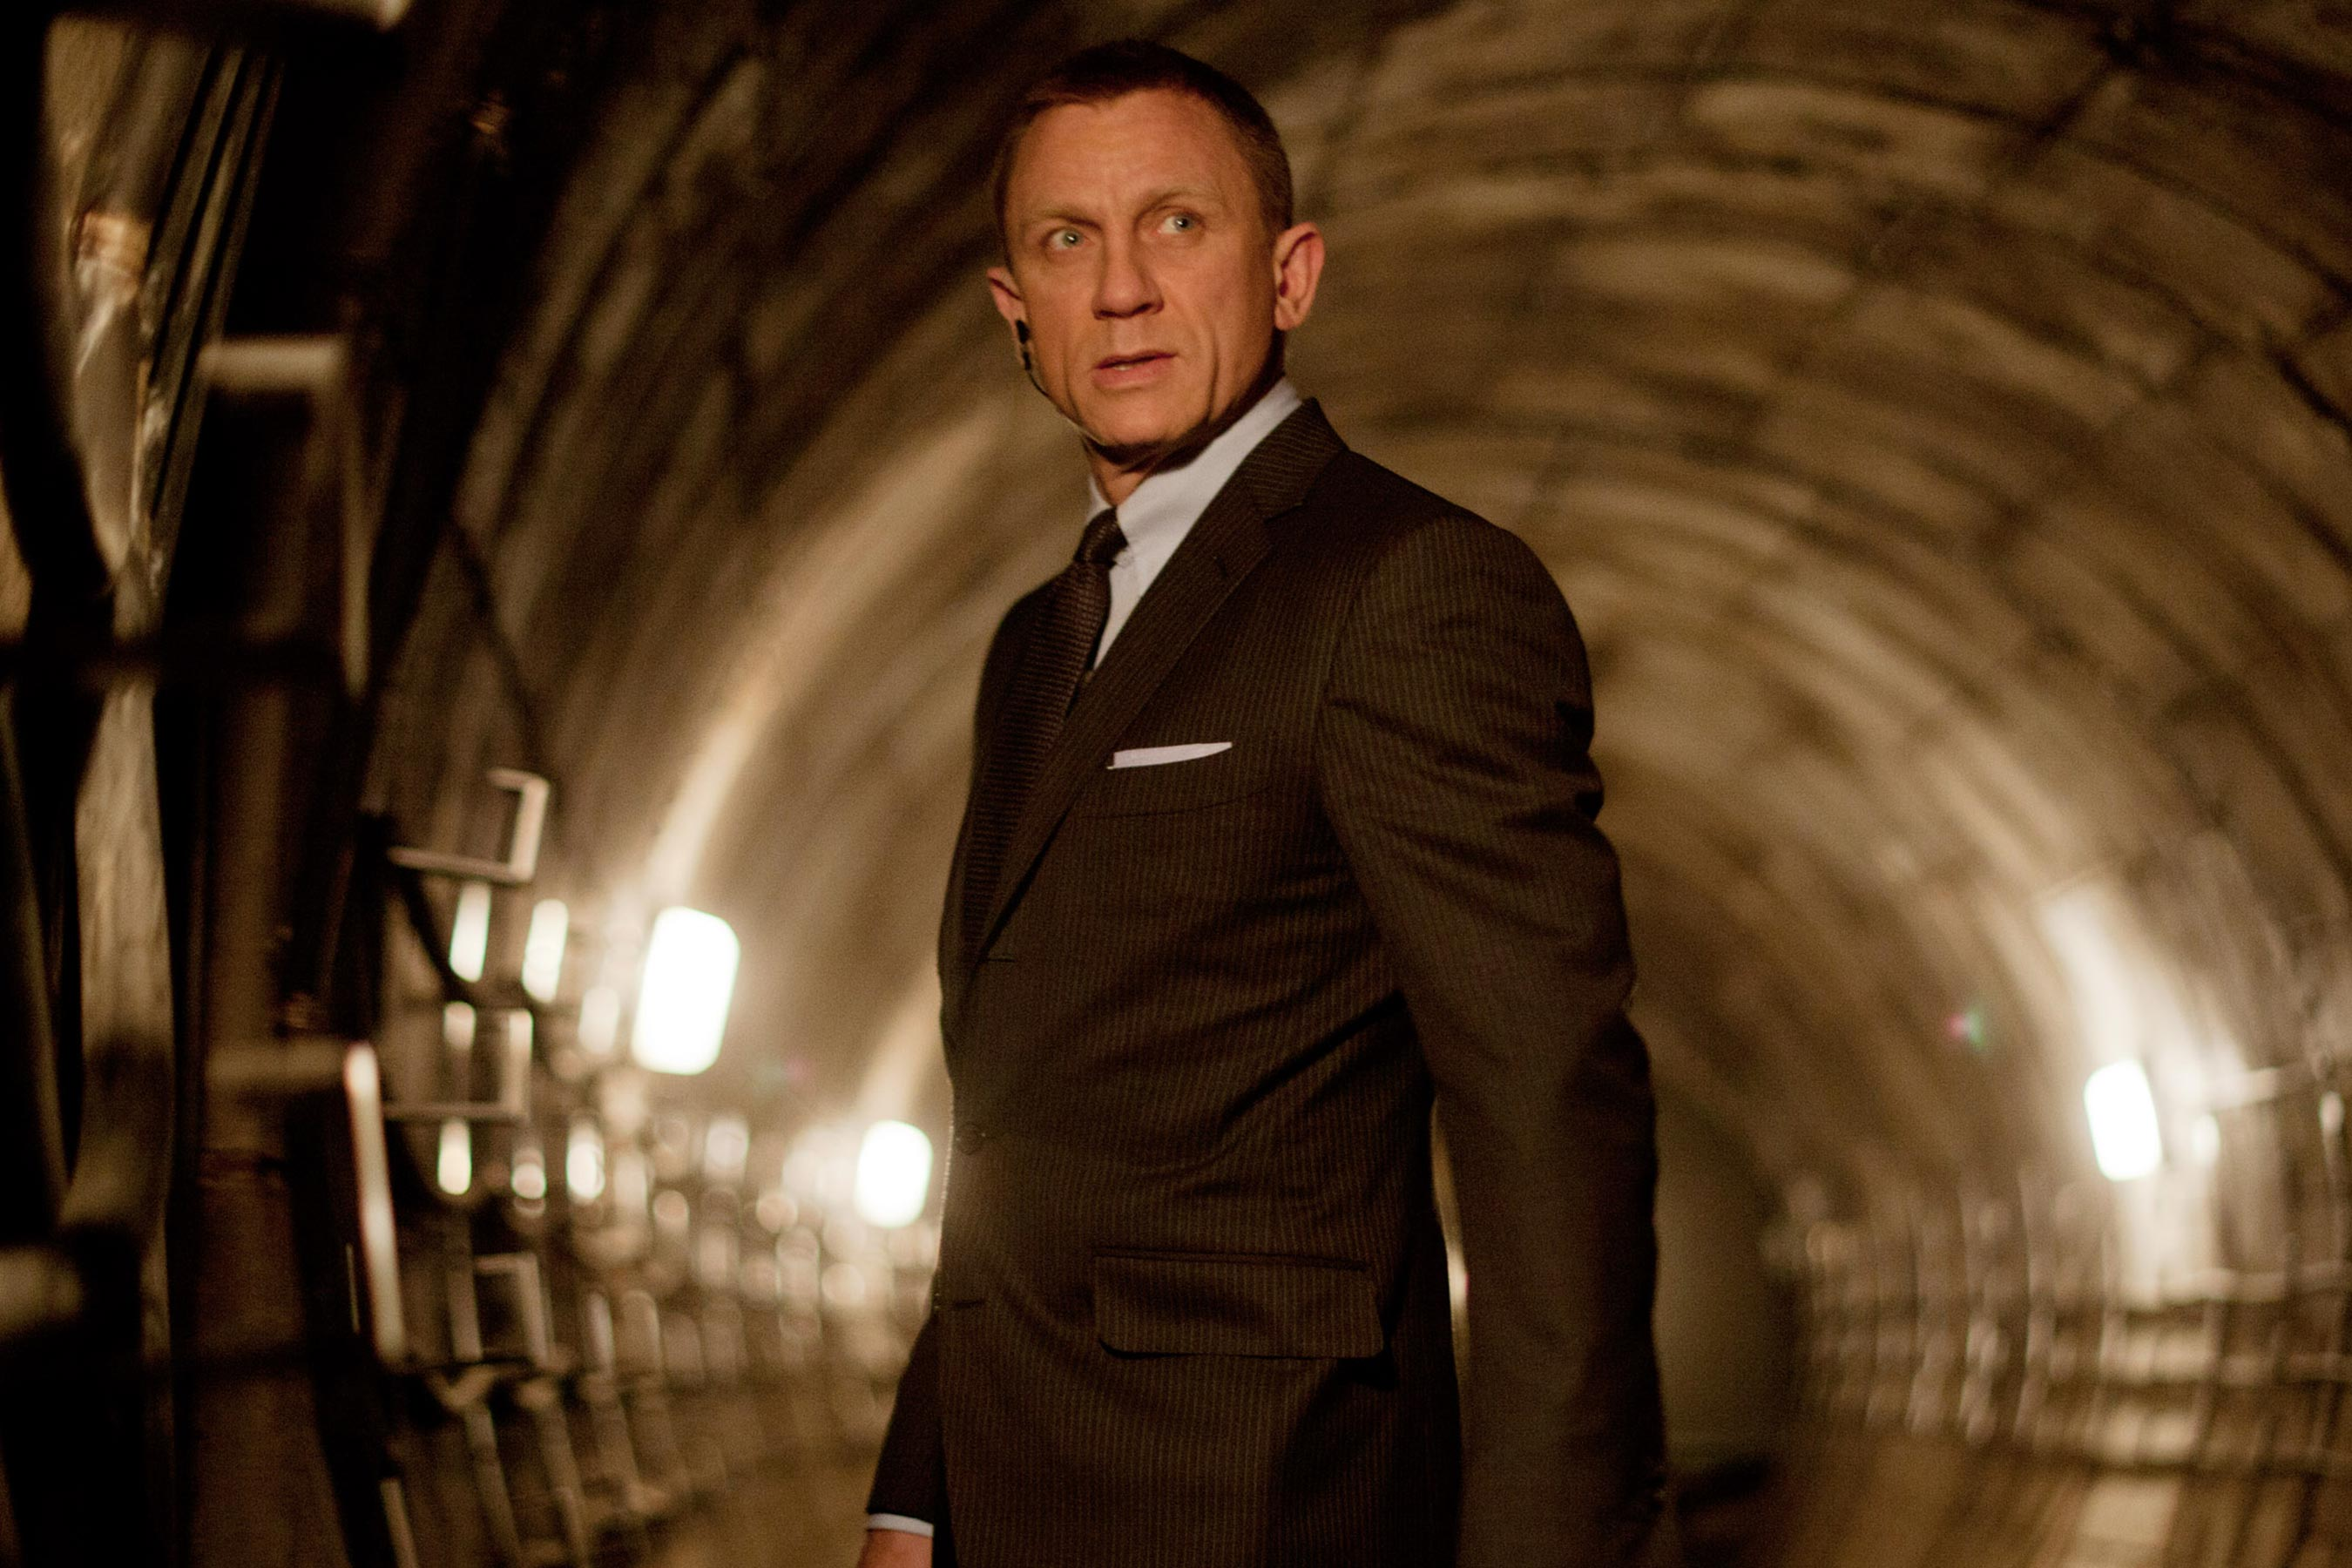 Danny Boyle reportedly confirms he will direct next James Bond film